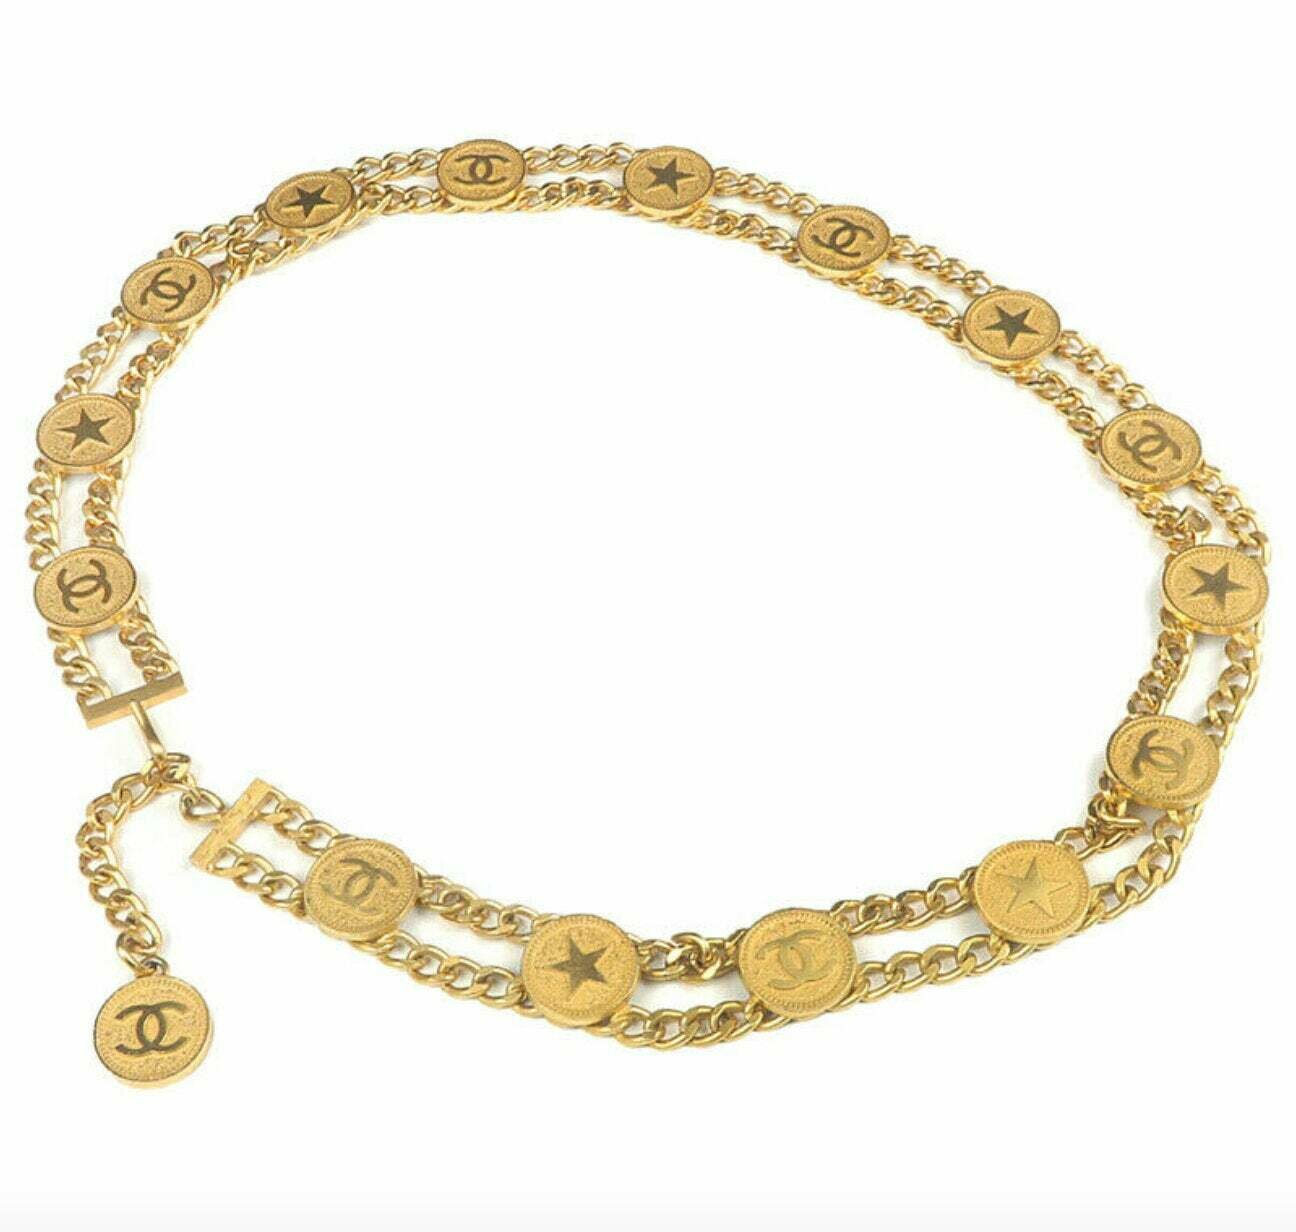 Vintage 90's CHANEL CC Letter Logo Star Disc Charm Gold Double Chain waist BELT necklace jewelry